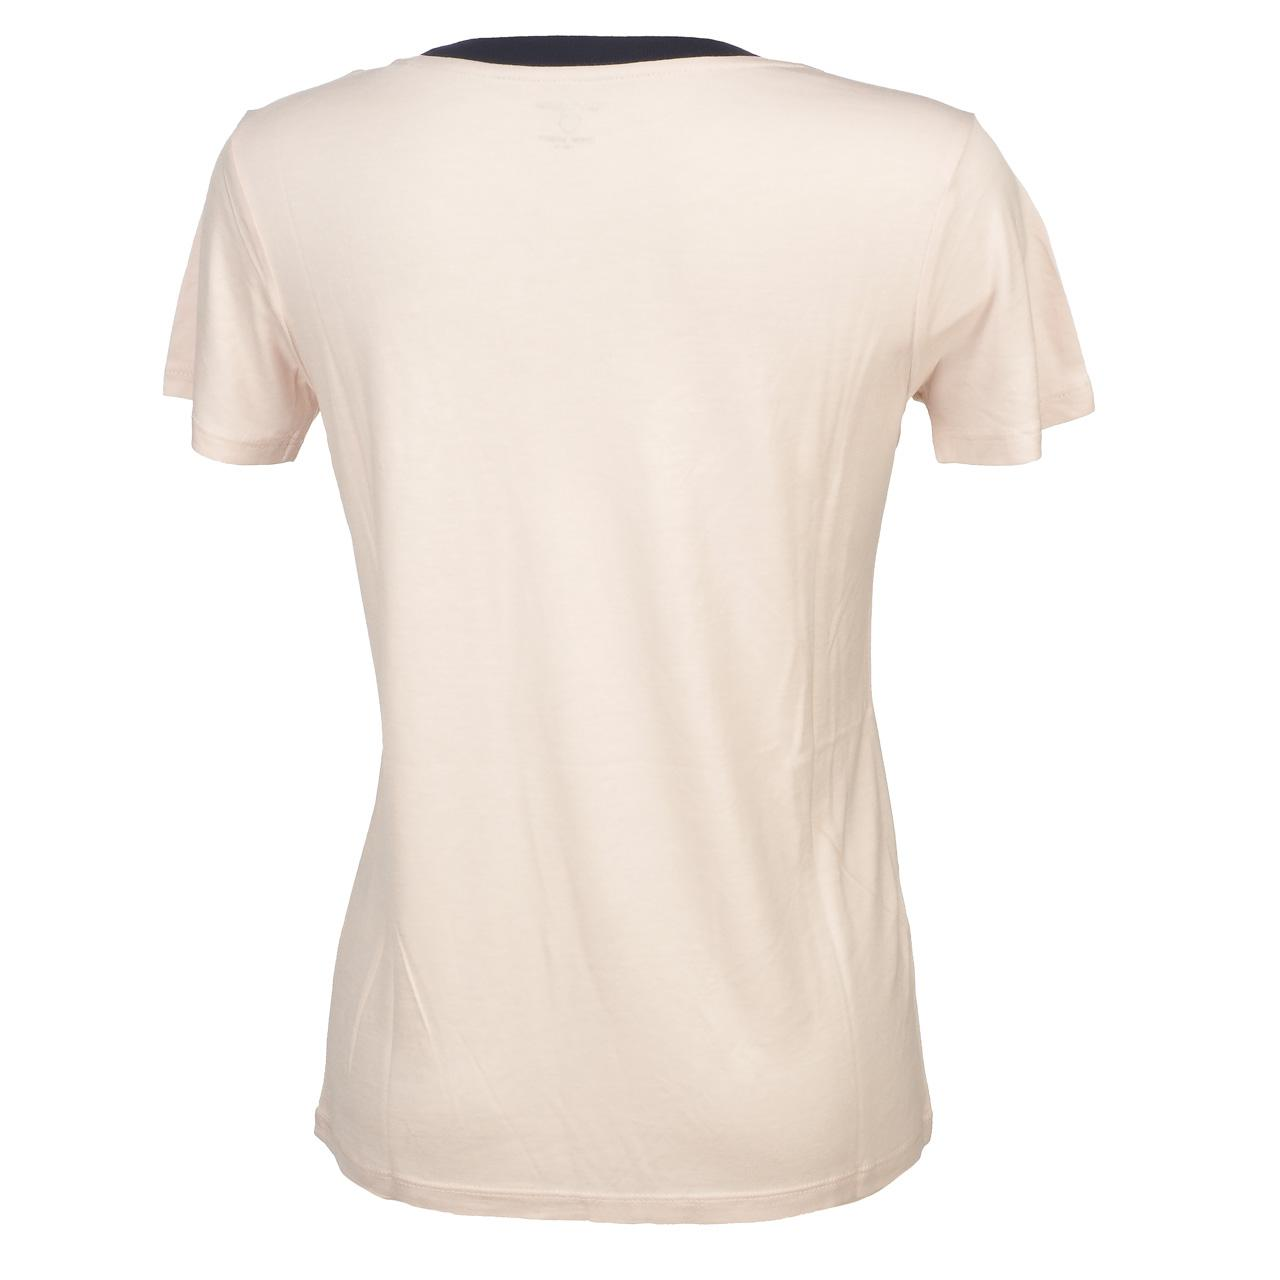 Tee-shirt-manches-courtes-Teddy-smith-Twelvo-rose-mc-tee-l-Rose-12078-Neuf